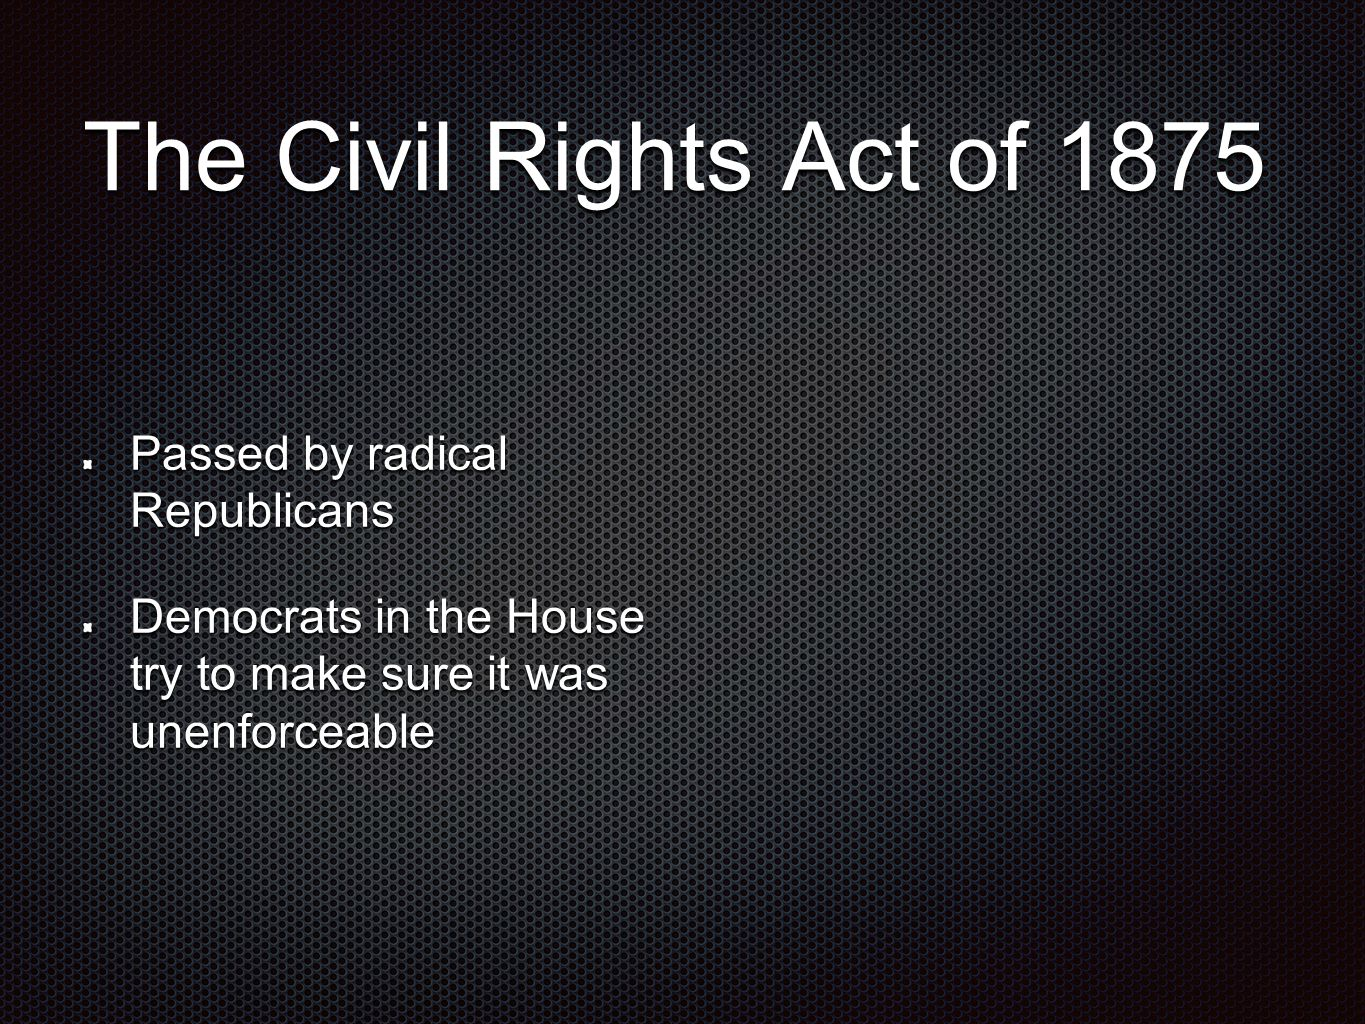 The Civil Rights Act of 1875 Passed by radical Republicans Democrats in the House try to make sure it was unenforceable